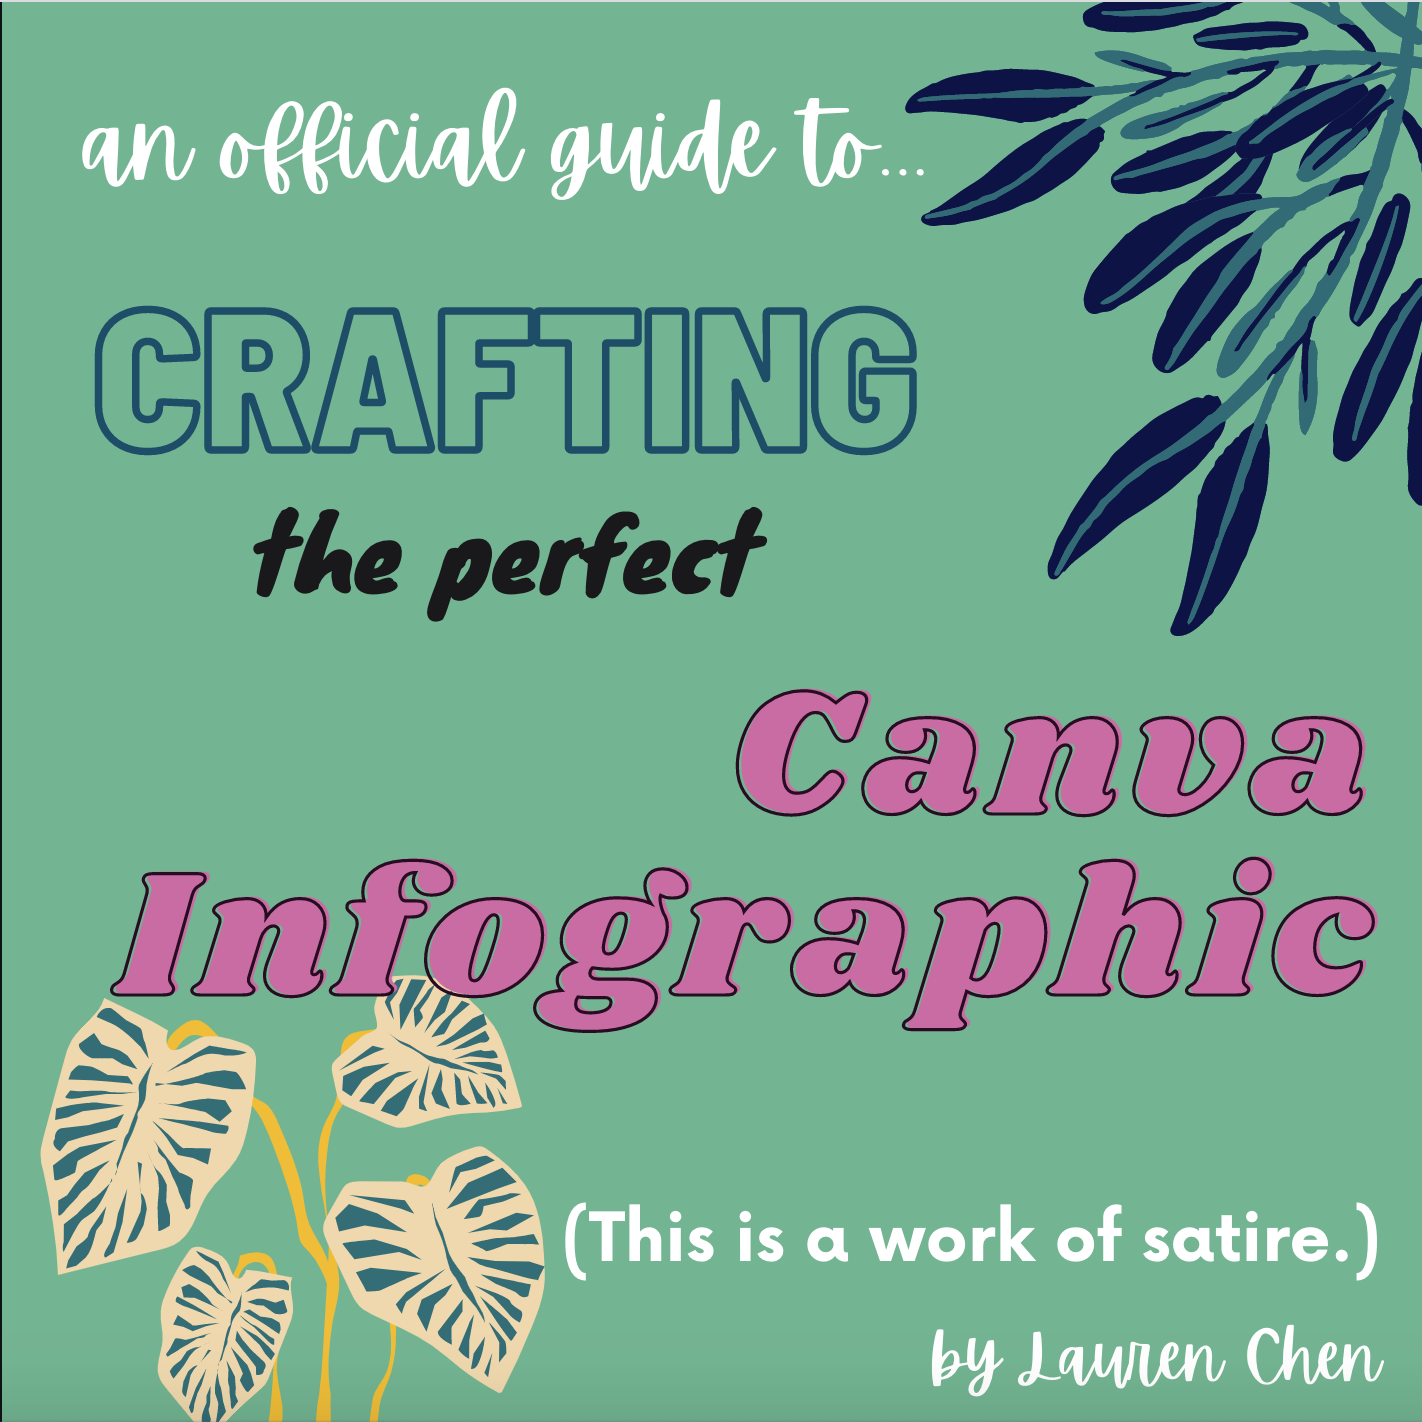 Crafting+the+perfect+Canva+infographic